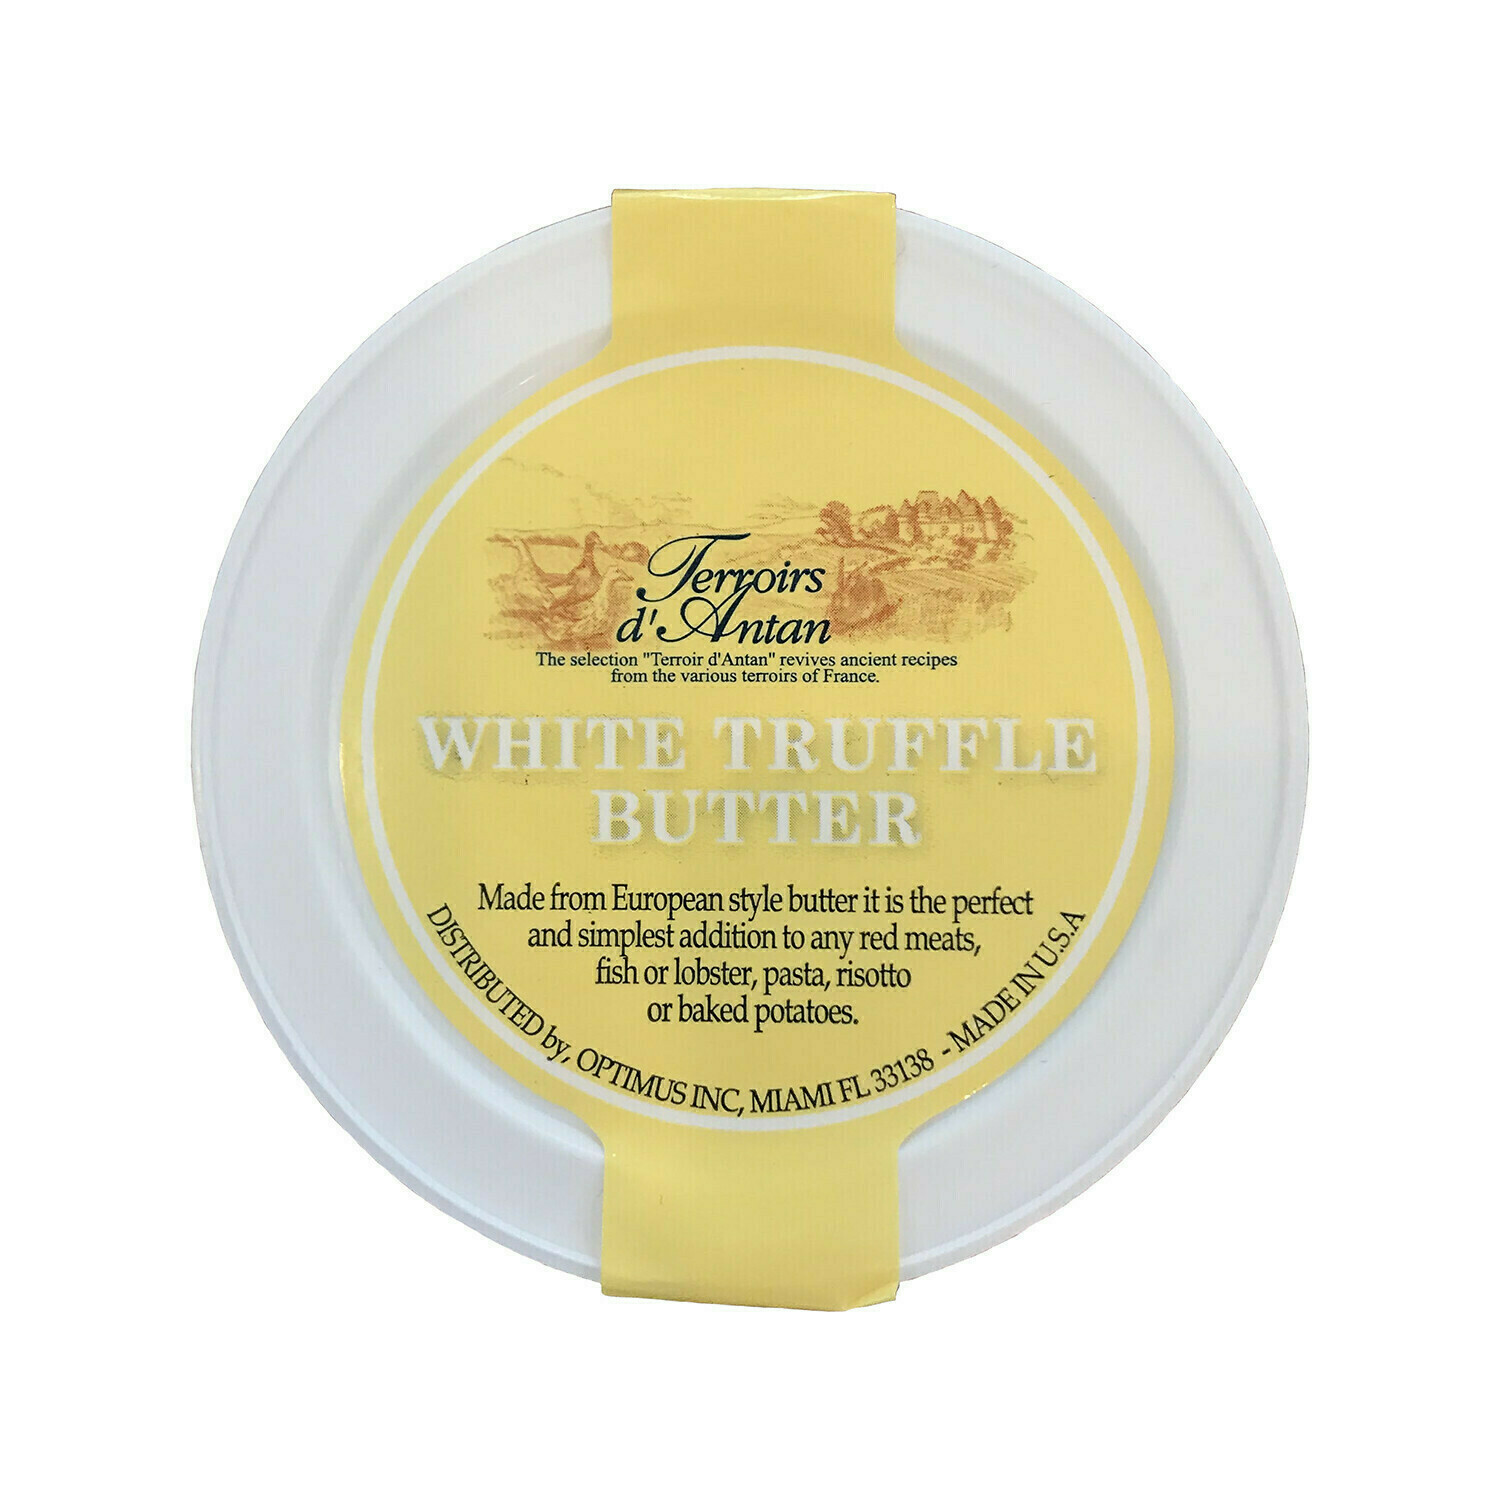 Terroirs d'Antan White Truffle Butter France 3oz